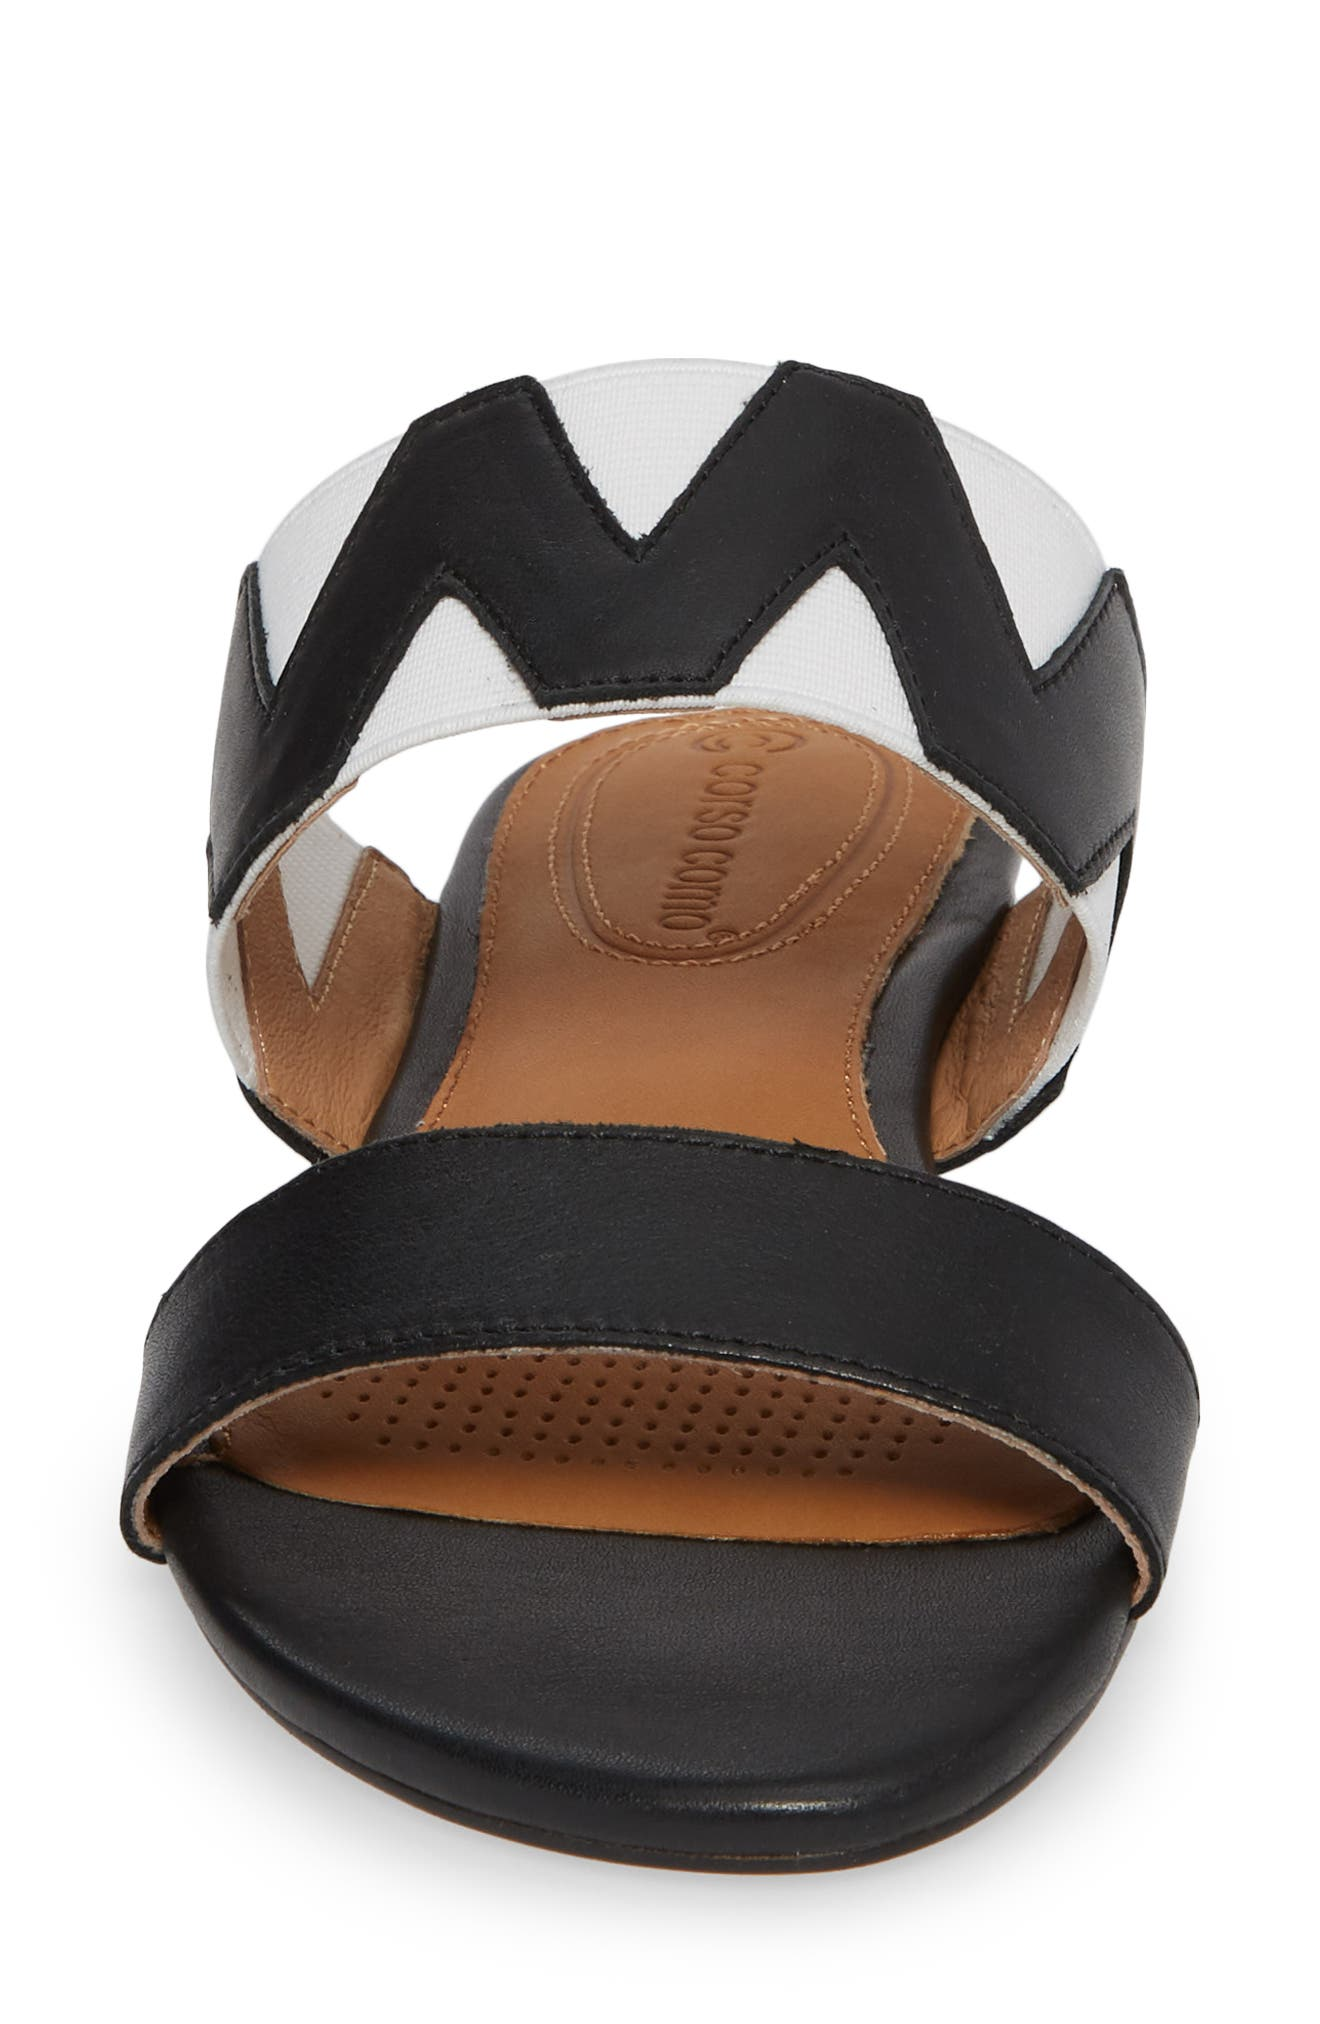 Vickee Double Band Sandal,                             Alternate thumbnail 4, color,                             BLACK/ WHITE LEATHER